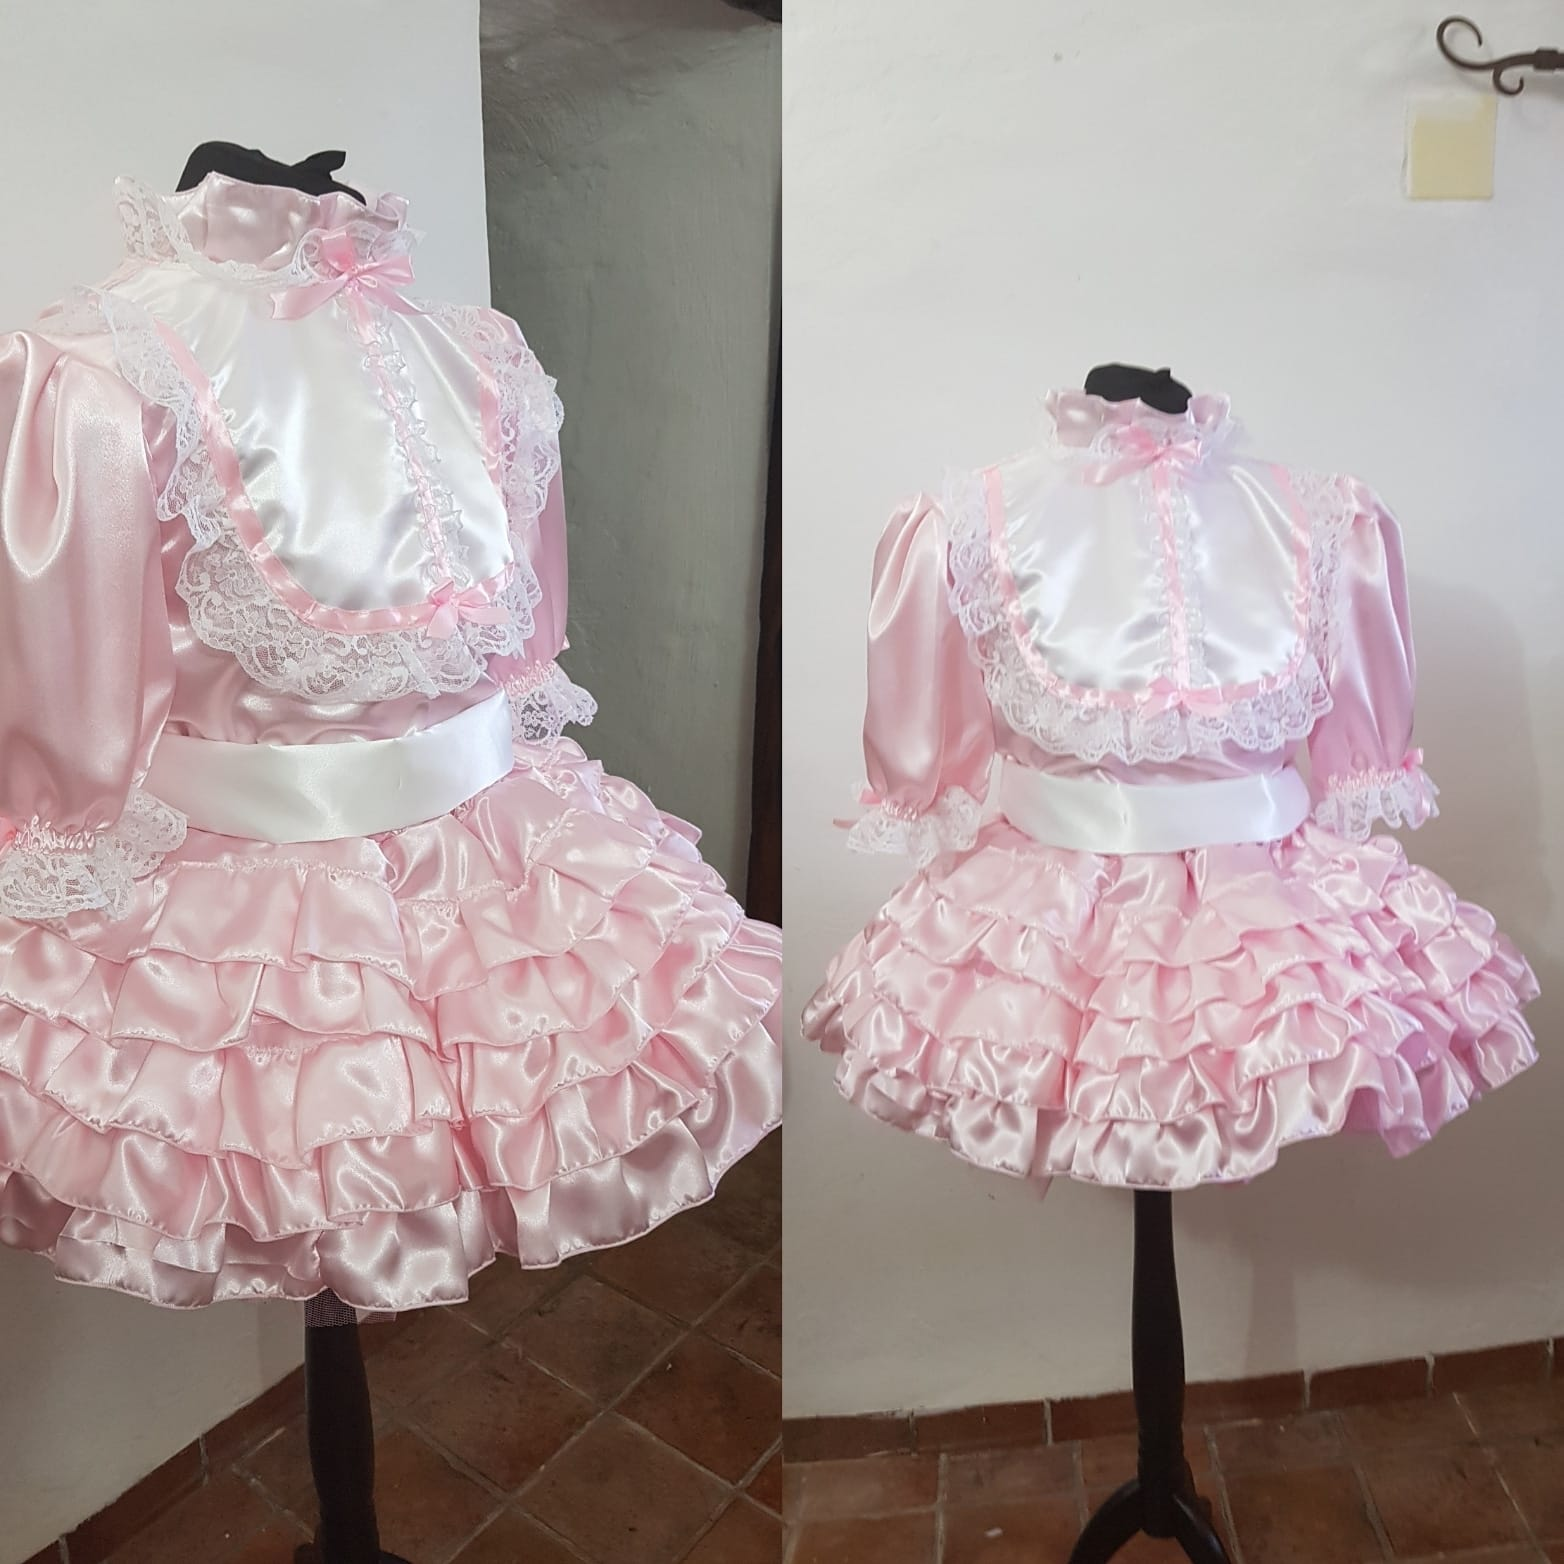 Sissy Dress – Pettina – Your Size Your Colour Your Choice